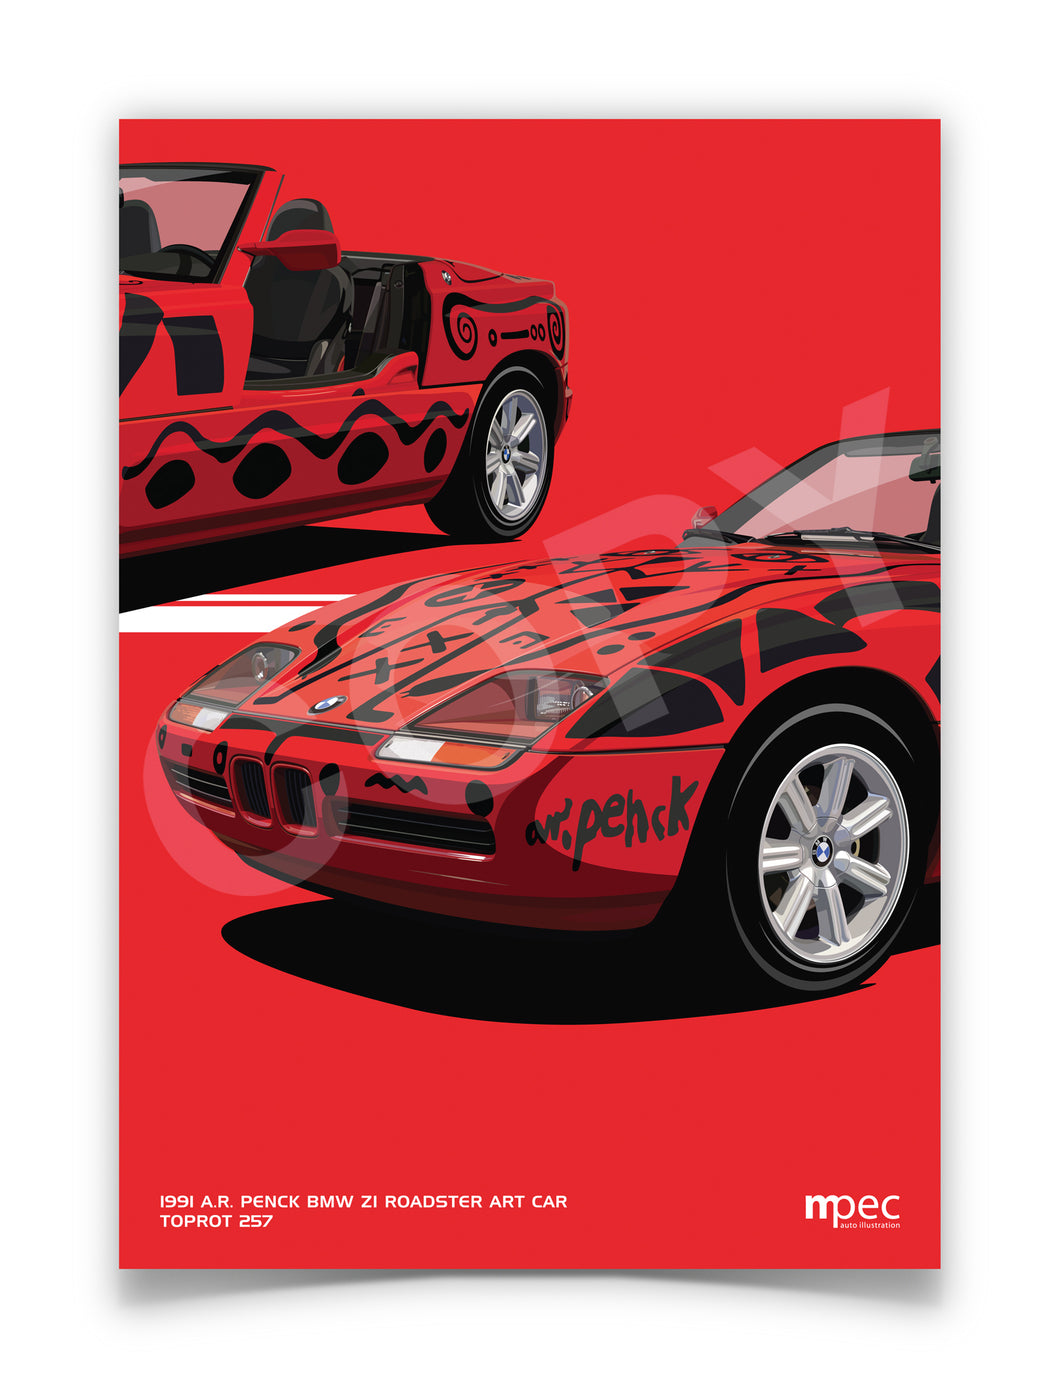 Print of 1991 A.R. Penck BMW Z1 Roadster Art Car in Toprot 257 - Close Up